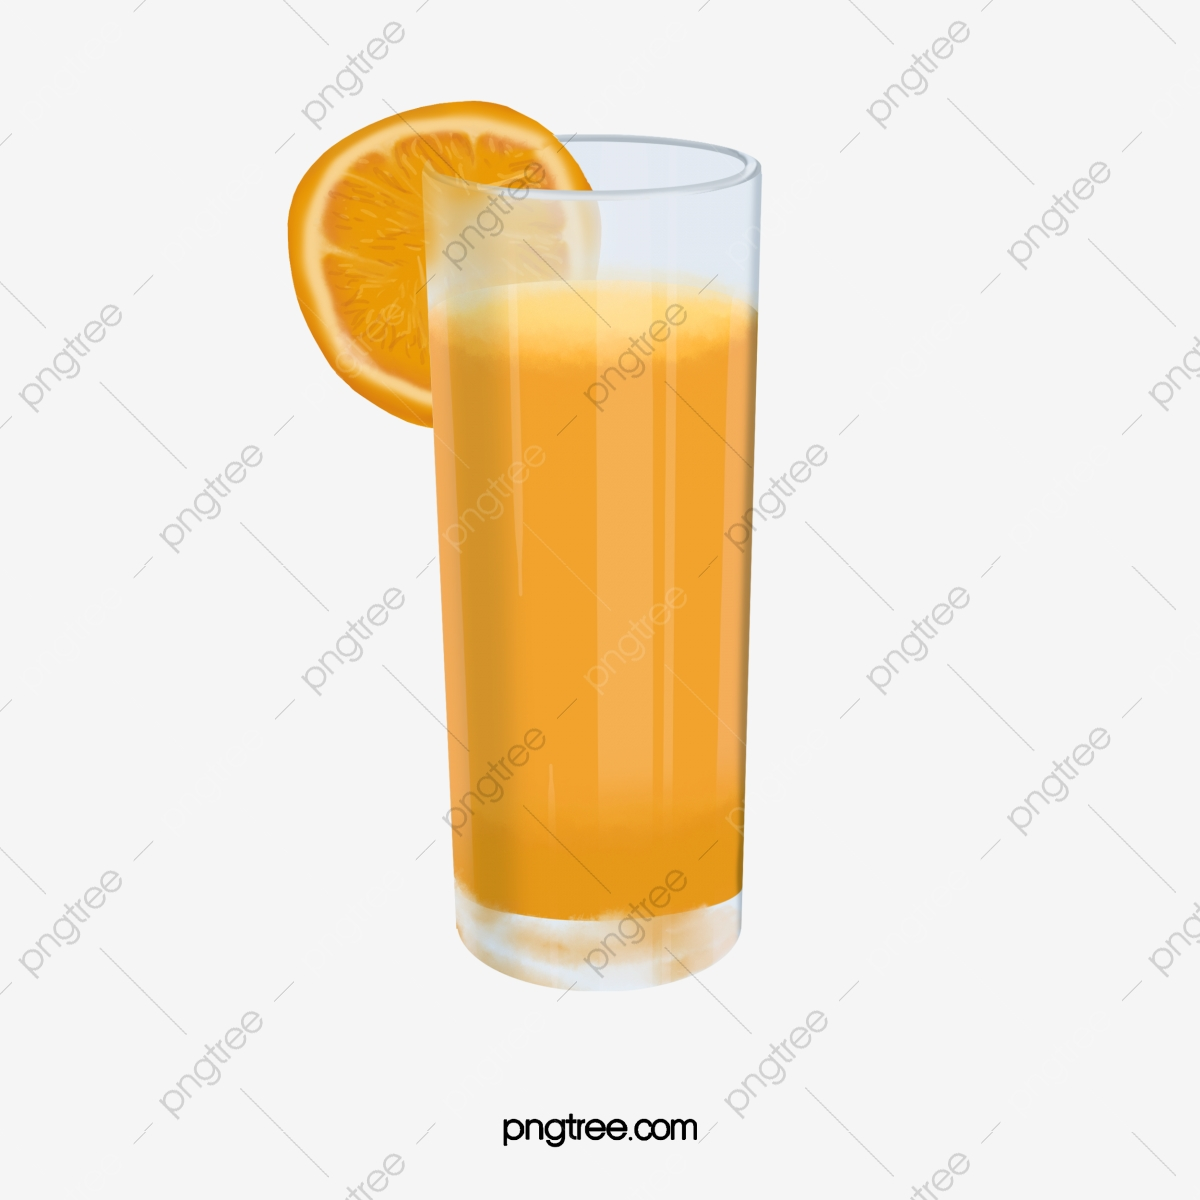 hight resolution of commercial use resource upgrade to premium plan and get license authorization upgradenow glass of orange juice orange clipart